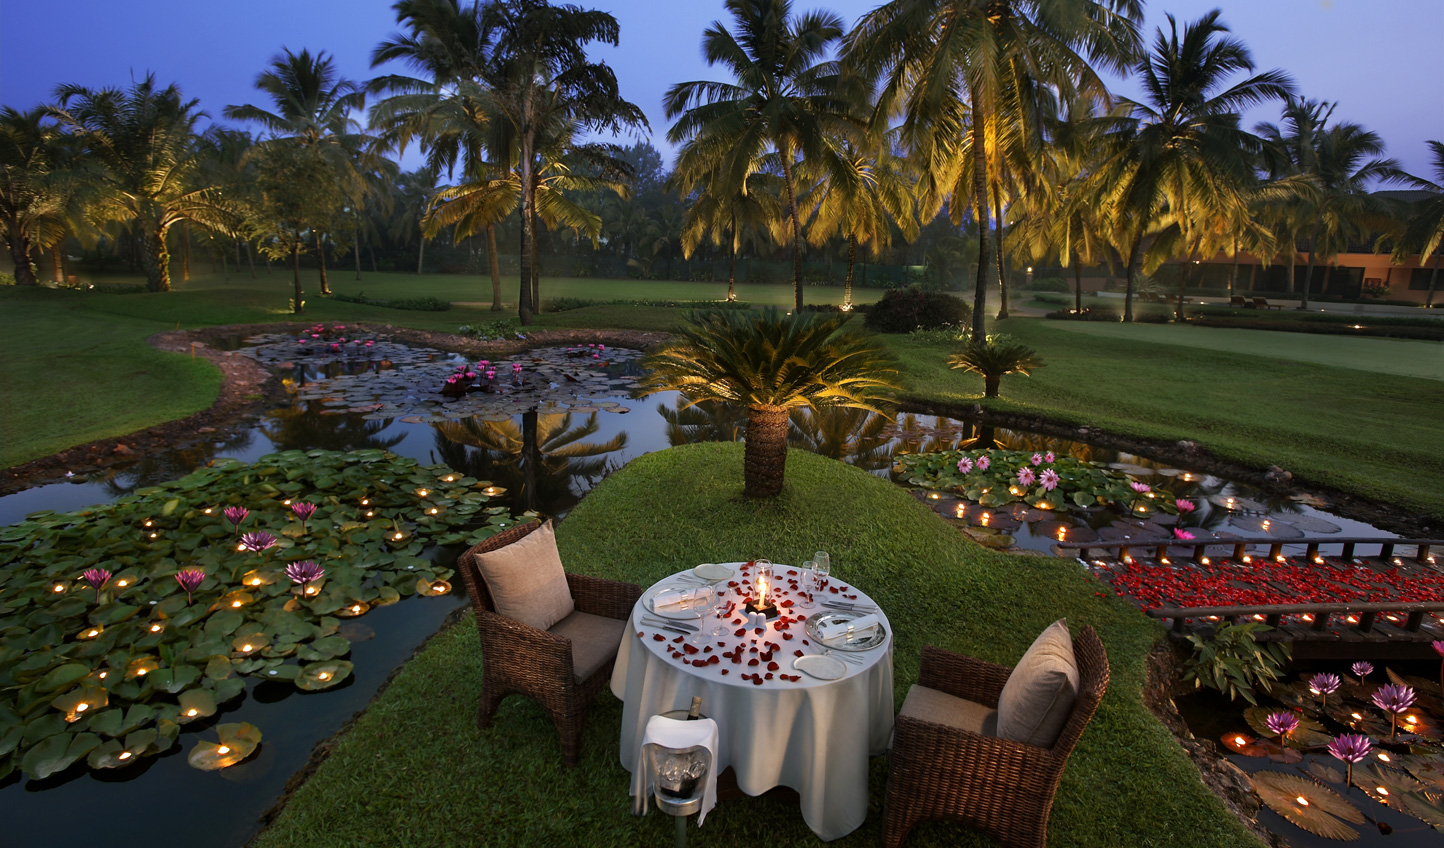 Dine out in the gardens surrounded by the soft scent of tropical flora